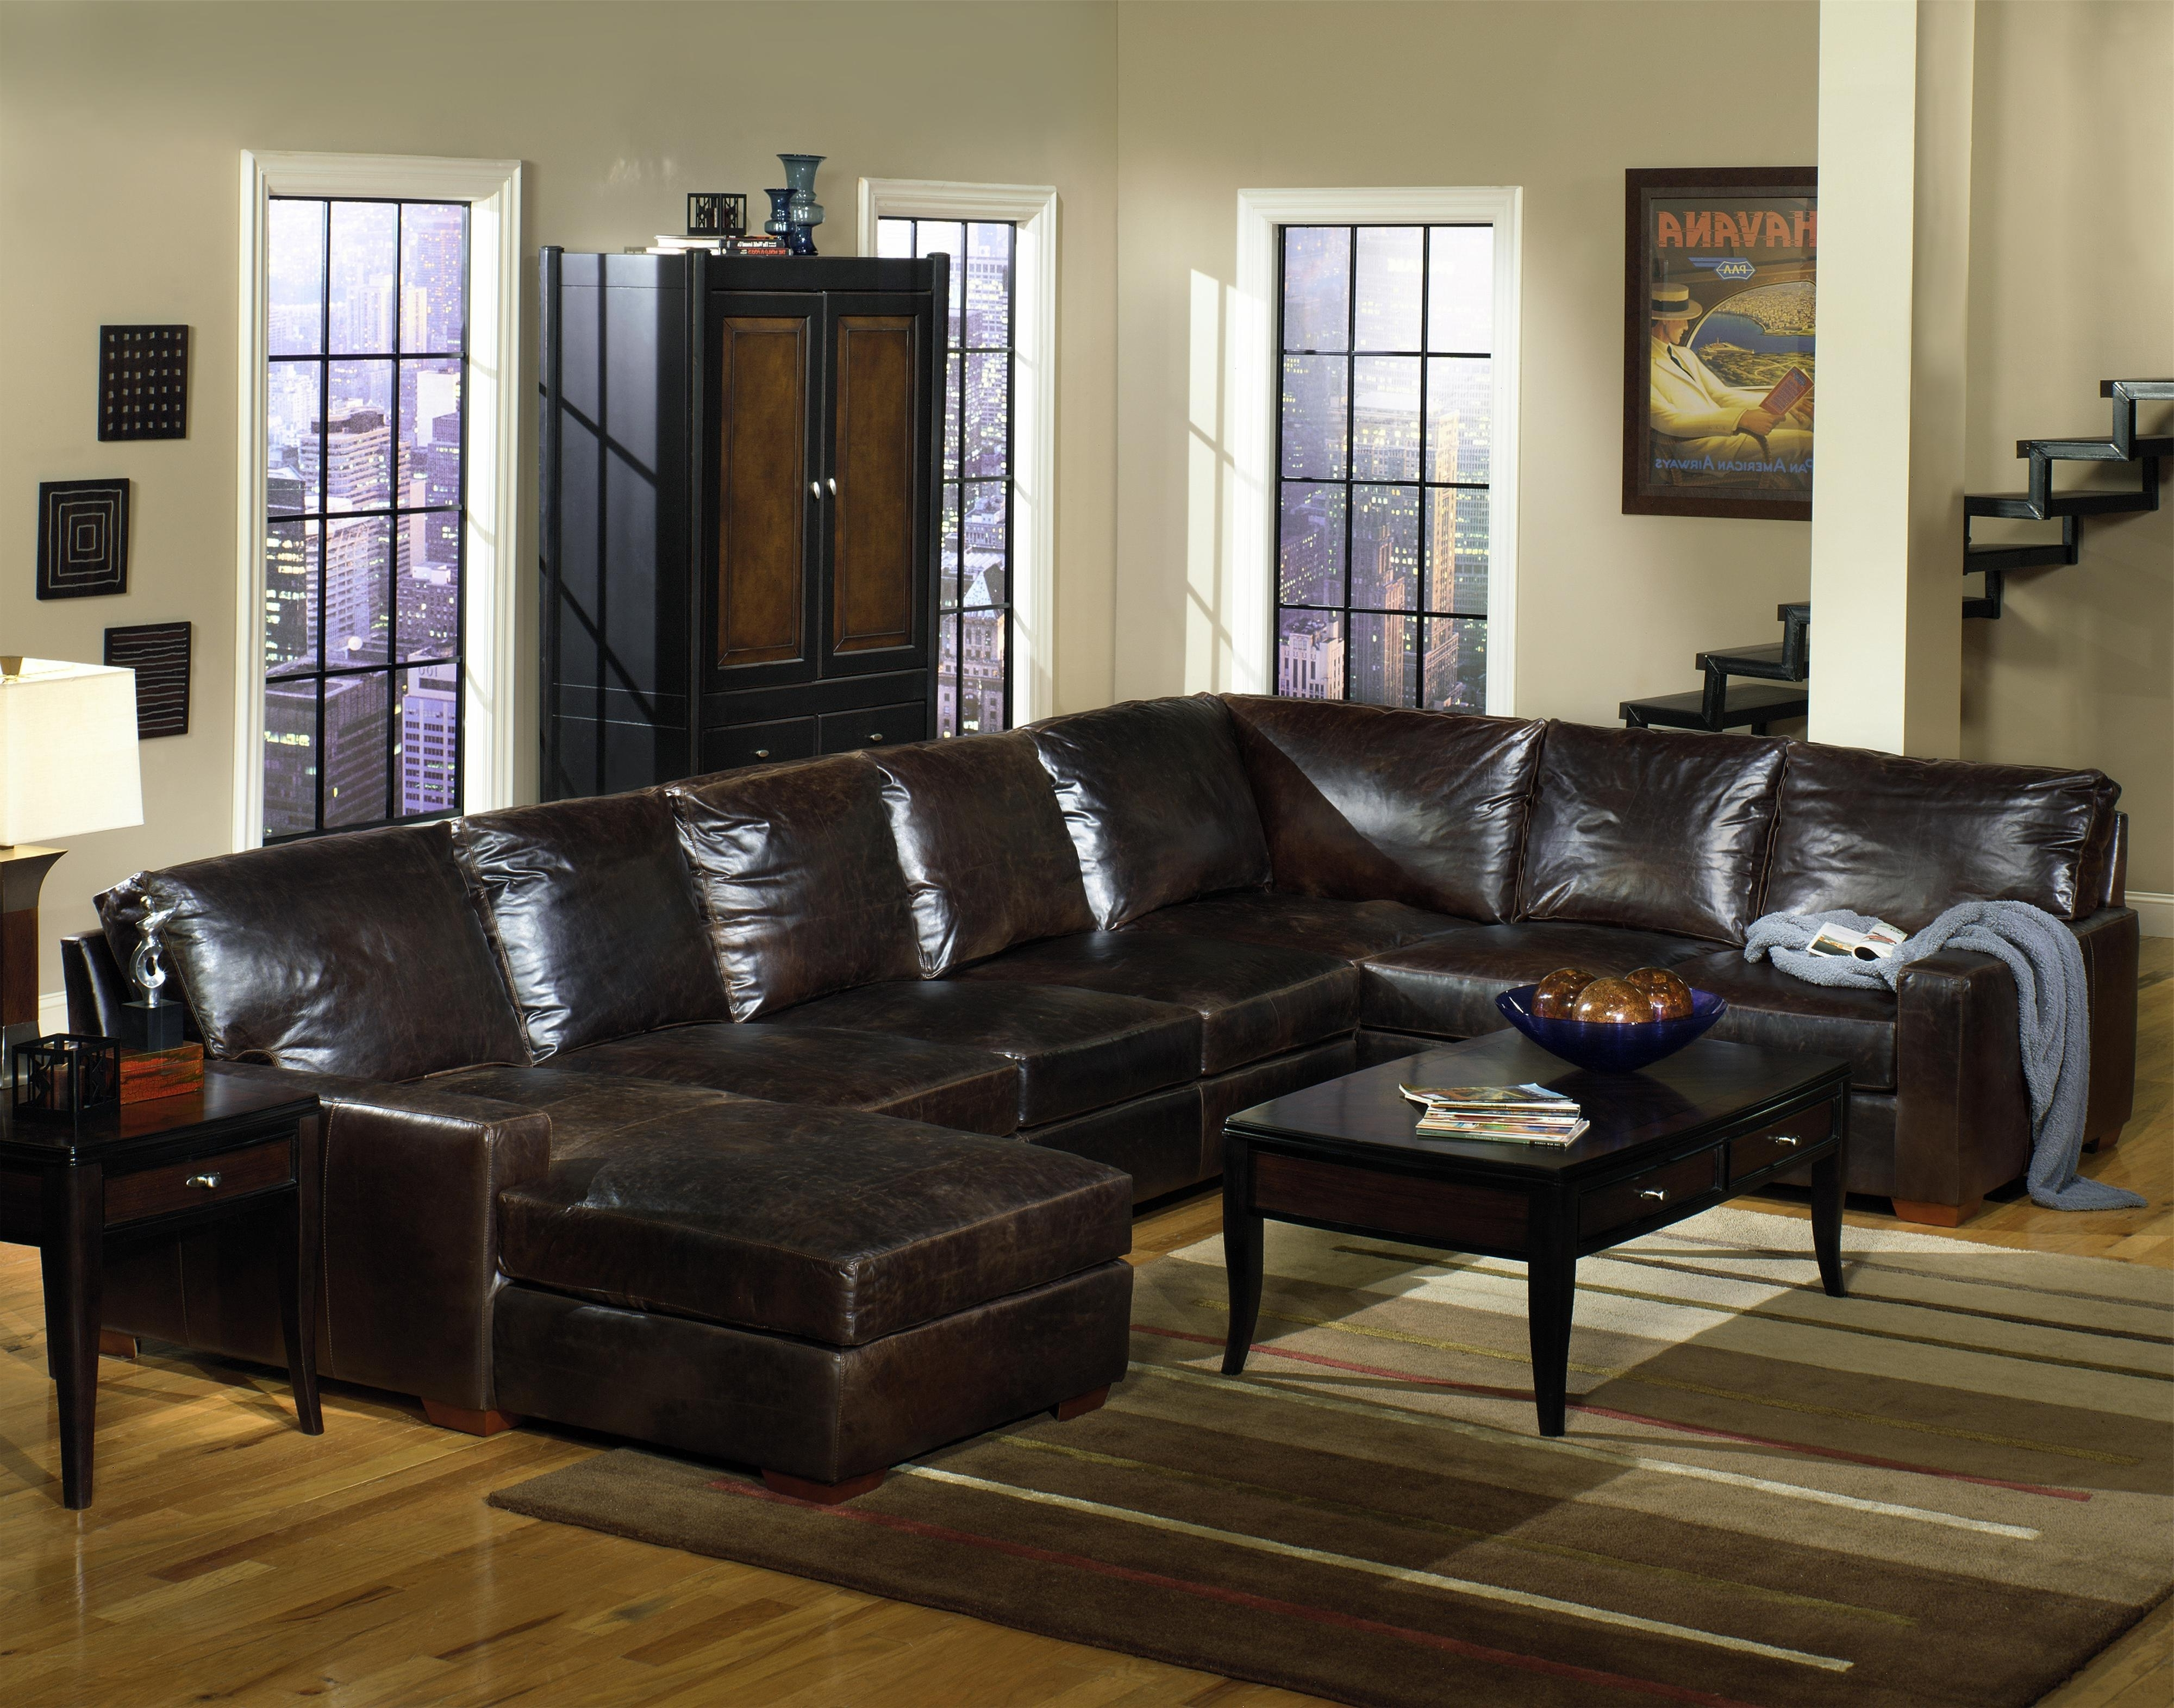 Best And Newest Usa Premium Leather 9935 Track Arm Sofa Chaise Sectional Regarding Leather Sectionals With Chaise And Recliner (View 4 of 15)